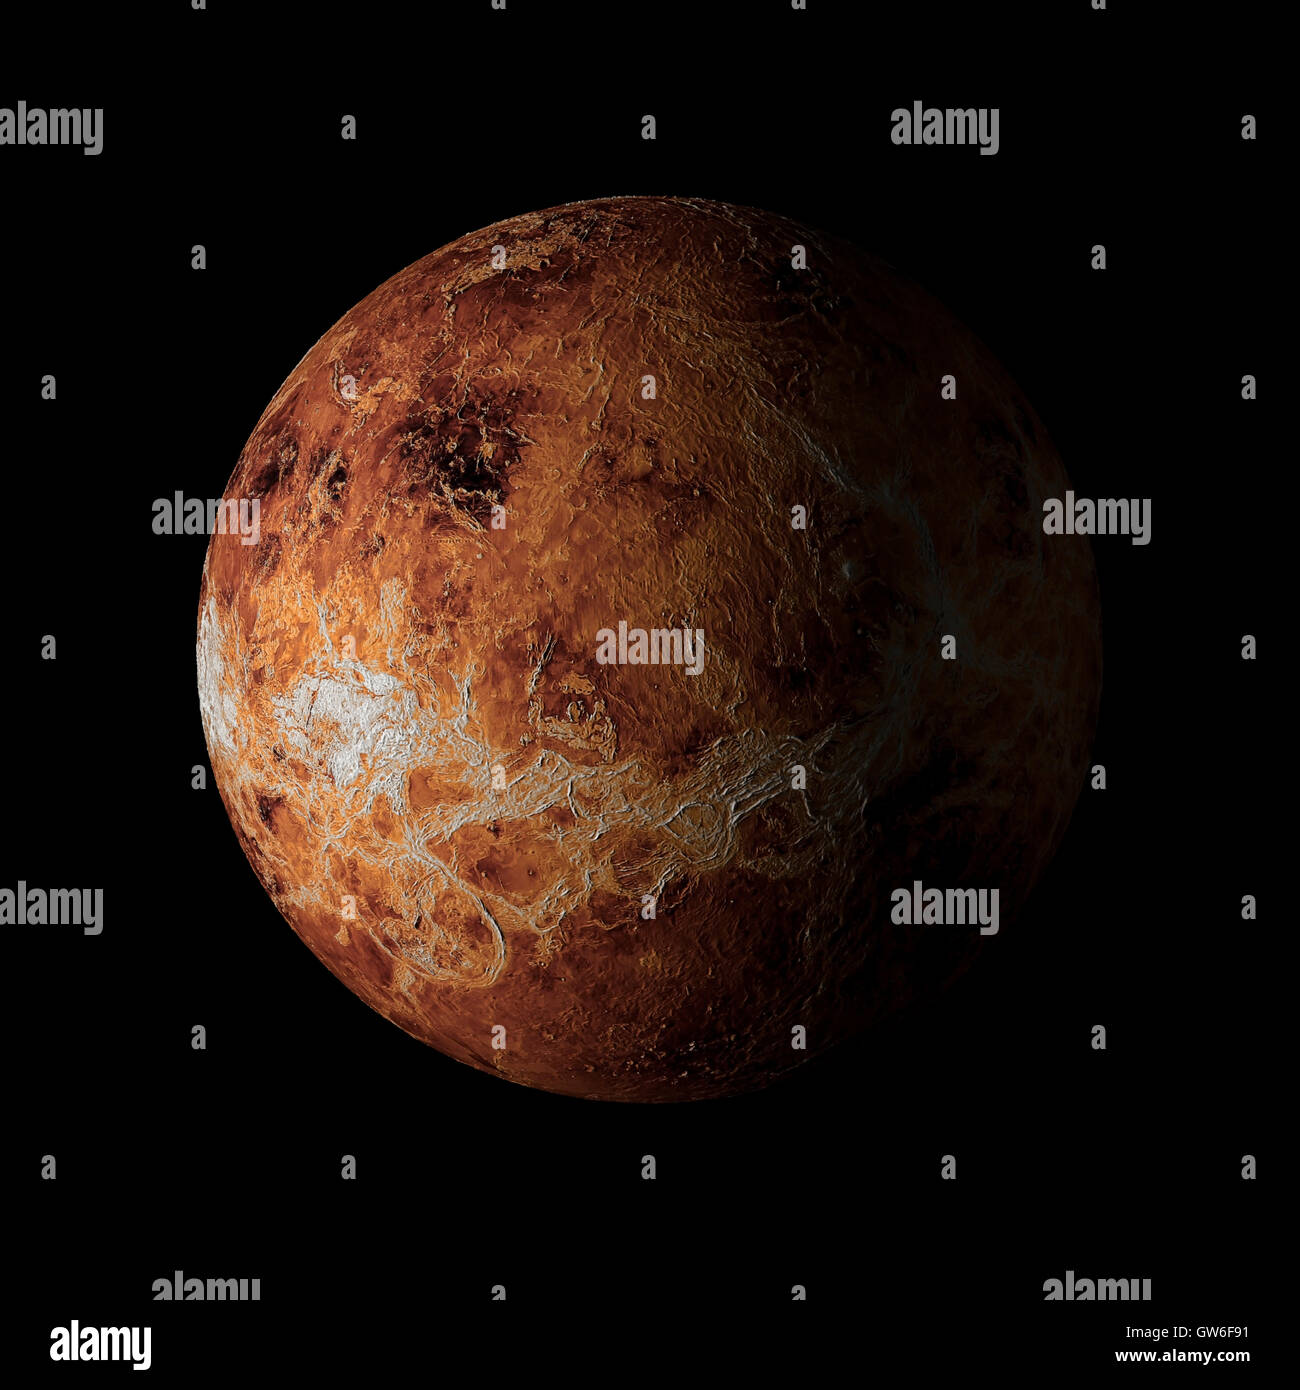 Solar system planet venus on black background 3d rendering solar system planet venus on black background 3d rendering elements of this image furnished by nasa voltagebd Choice Image